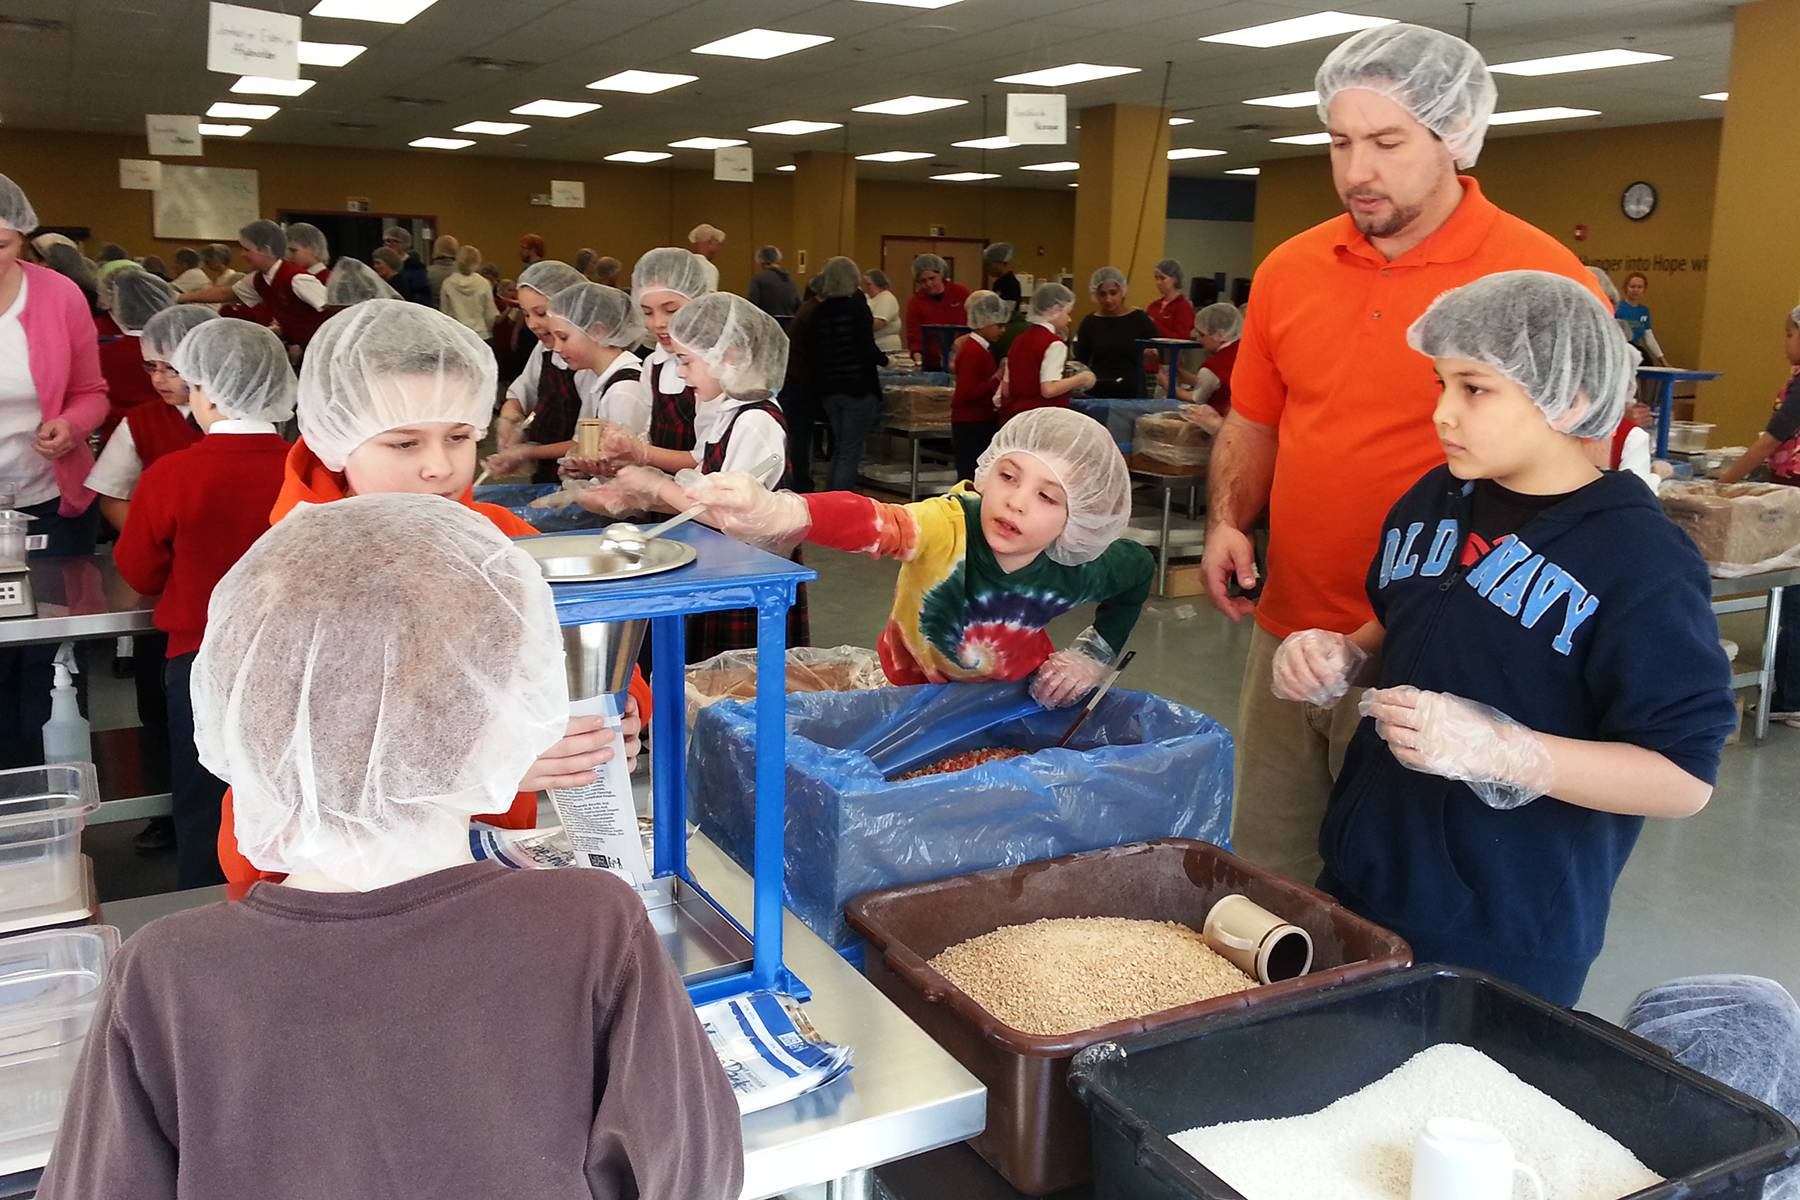 Students from Country Meadows Montessori School hand-pack meals to be shipped to around the world by Feed My Starving Children as part of an ongoing service project to help the hungry.